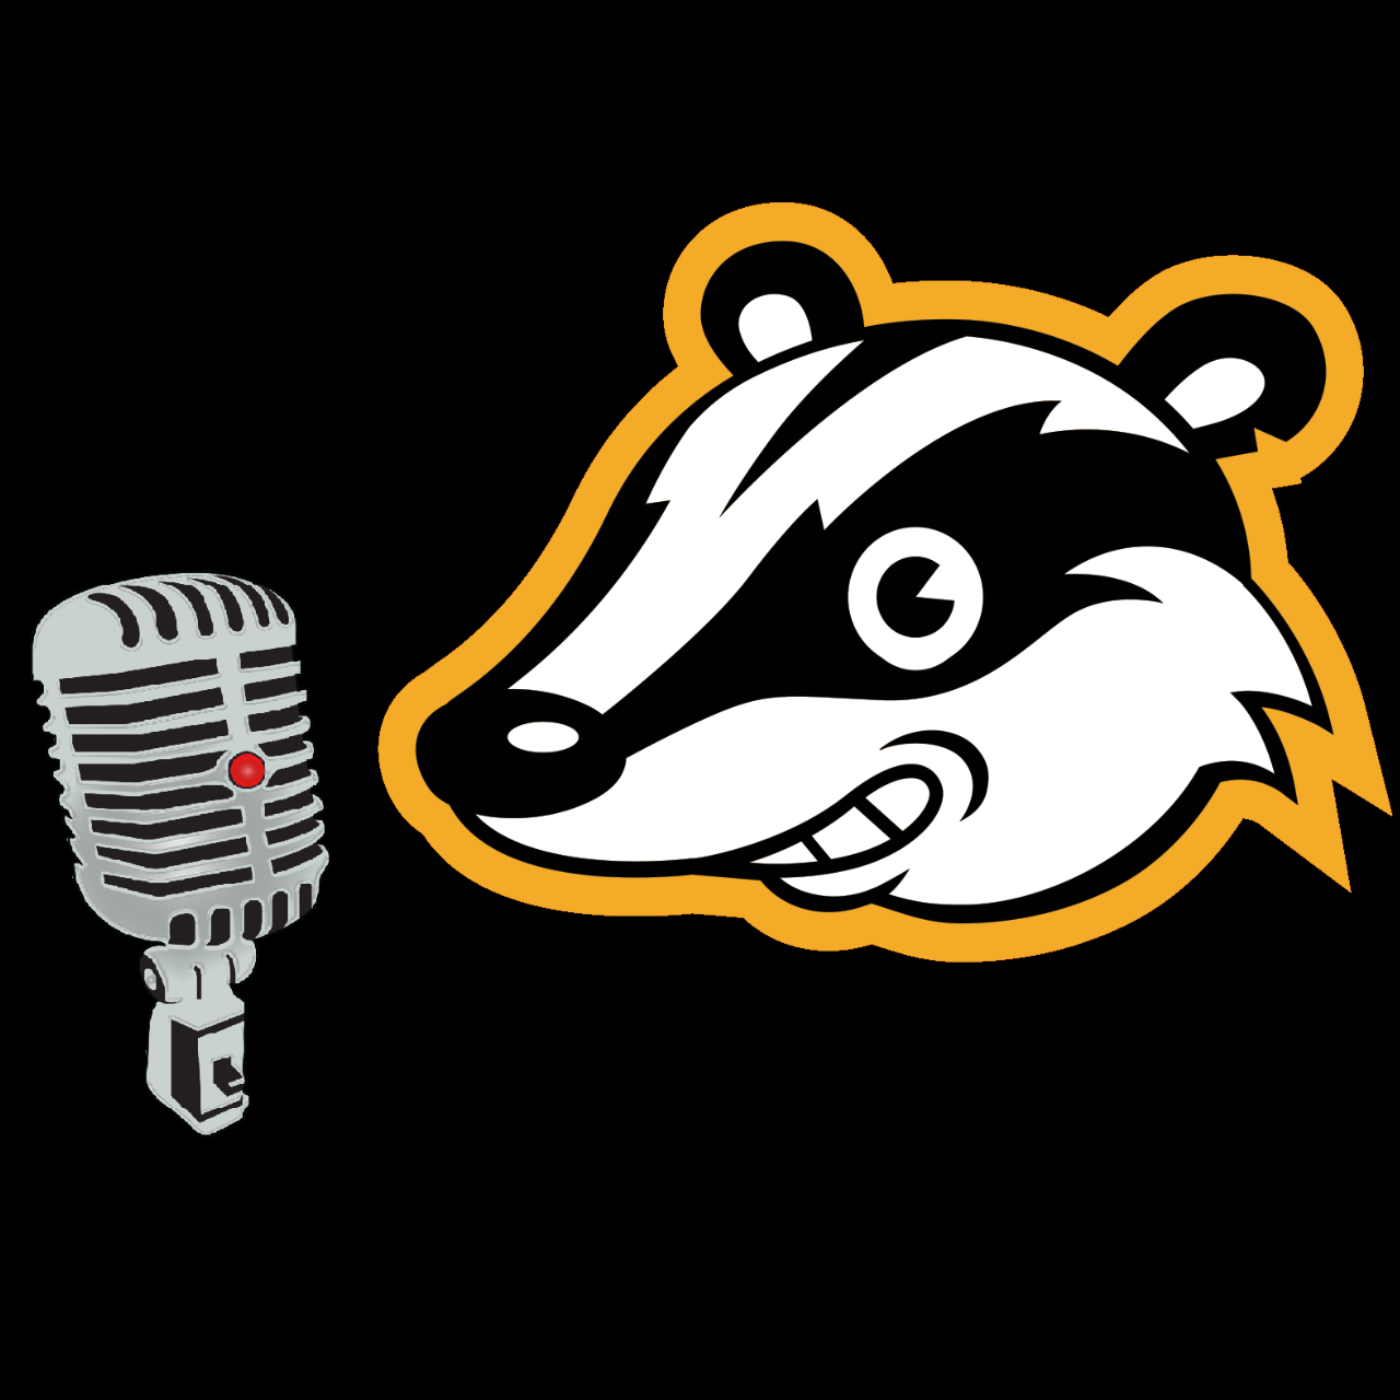 Down the badger hole podcast